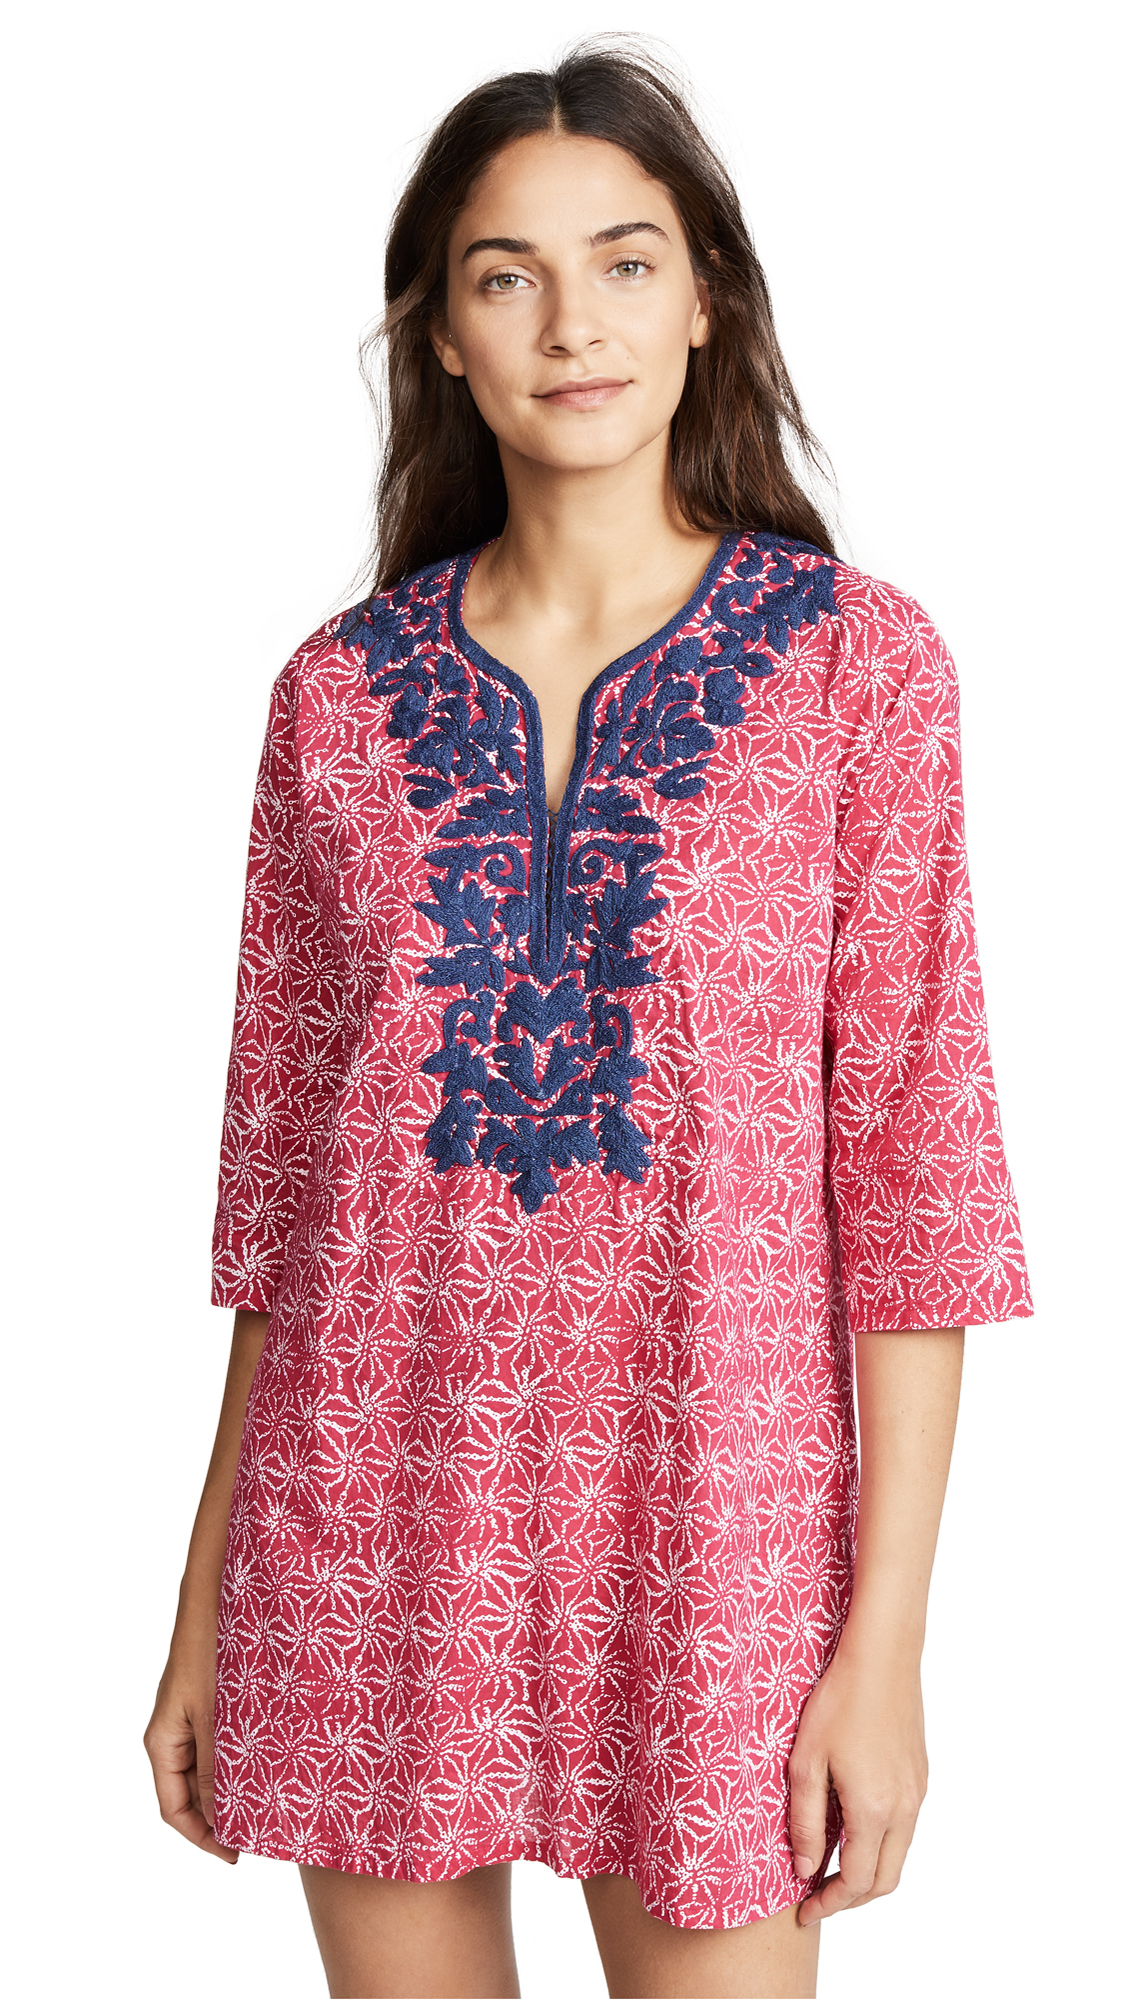 ROLLER RABBIT URCHIN DYE INEZ KURTA COVER UP